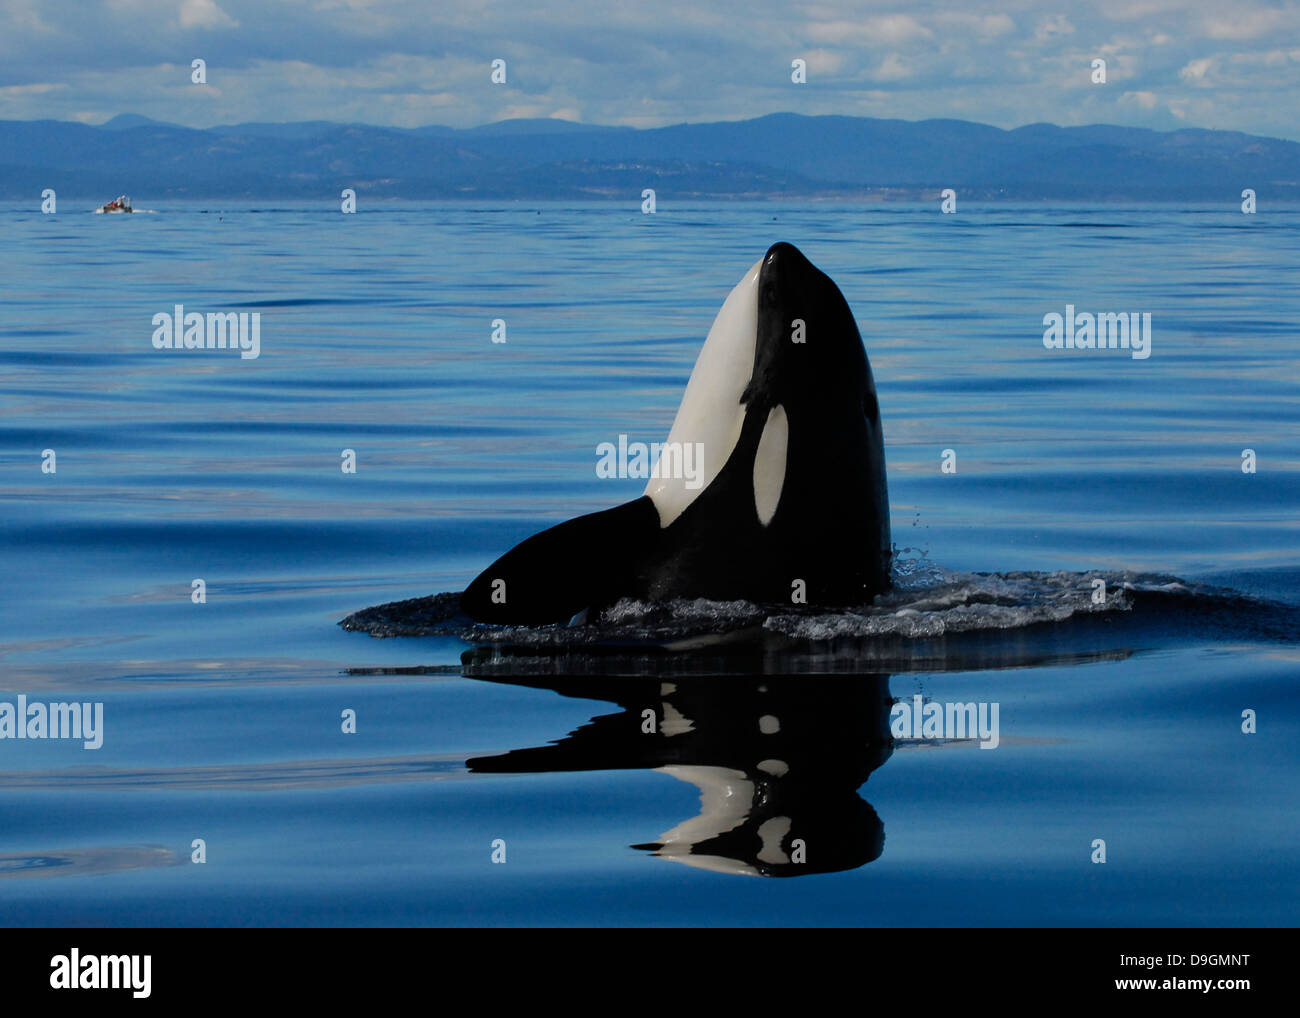 a killer whale spyhops to take a look at its surroundings with a whale-watching boat in the background - Stock Image